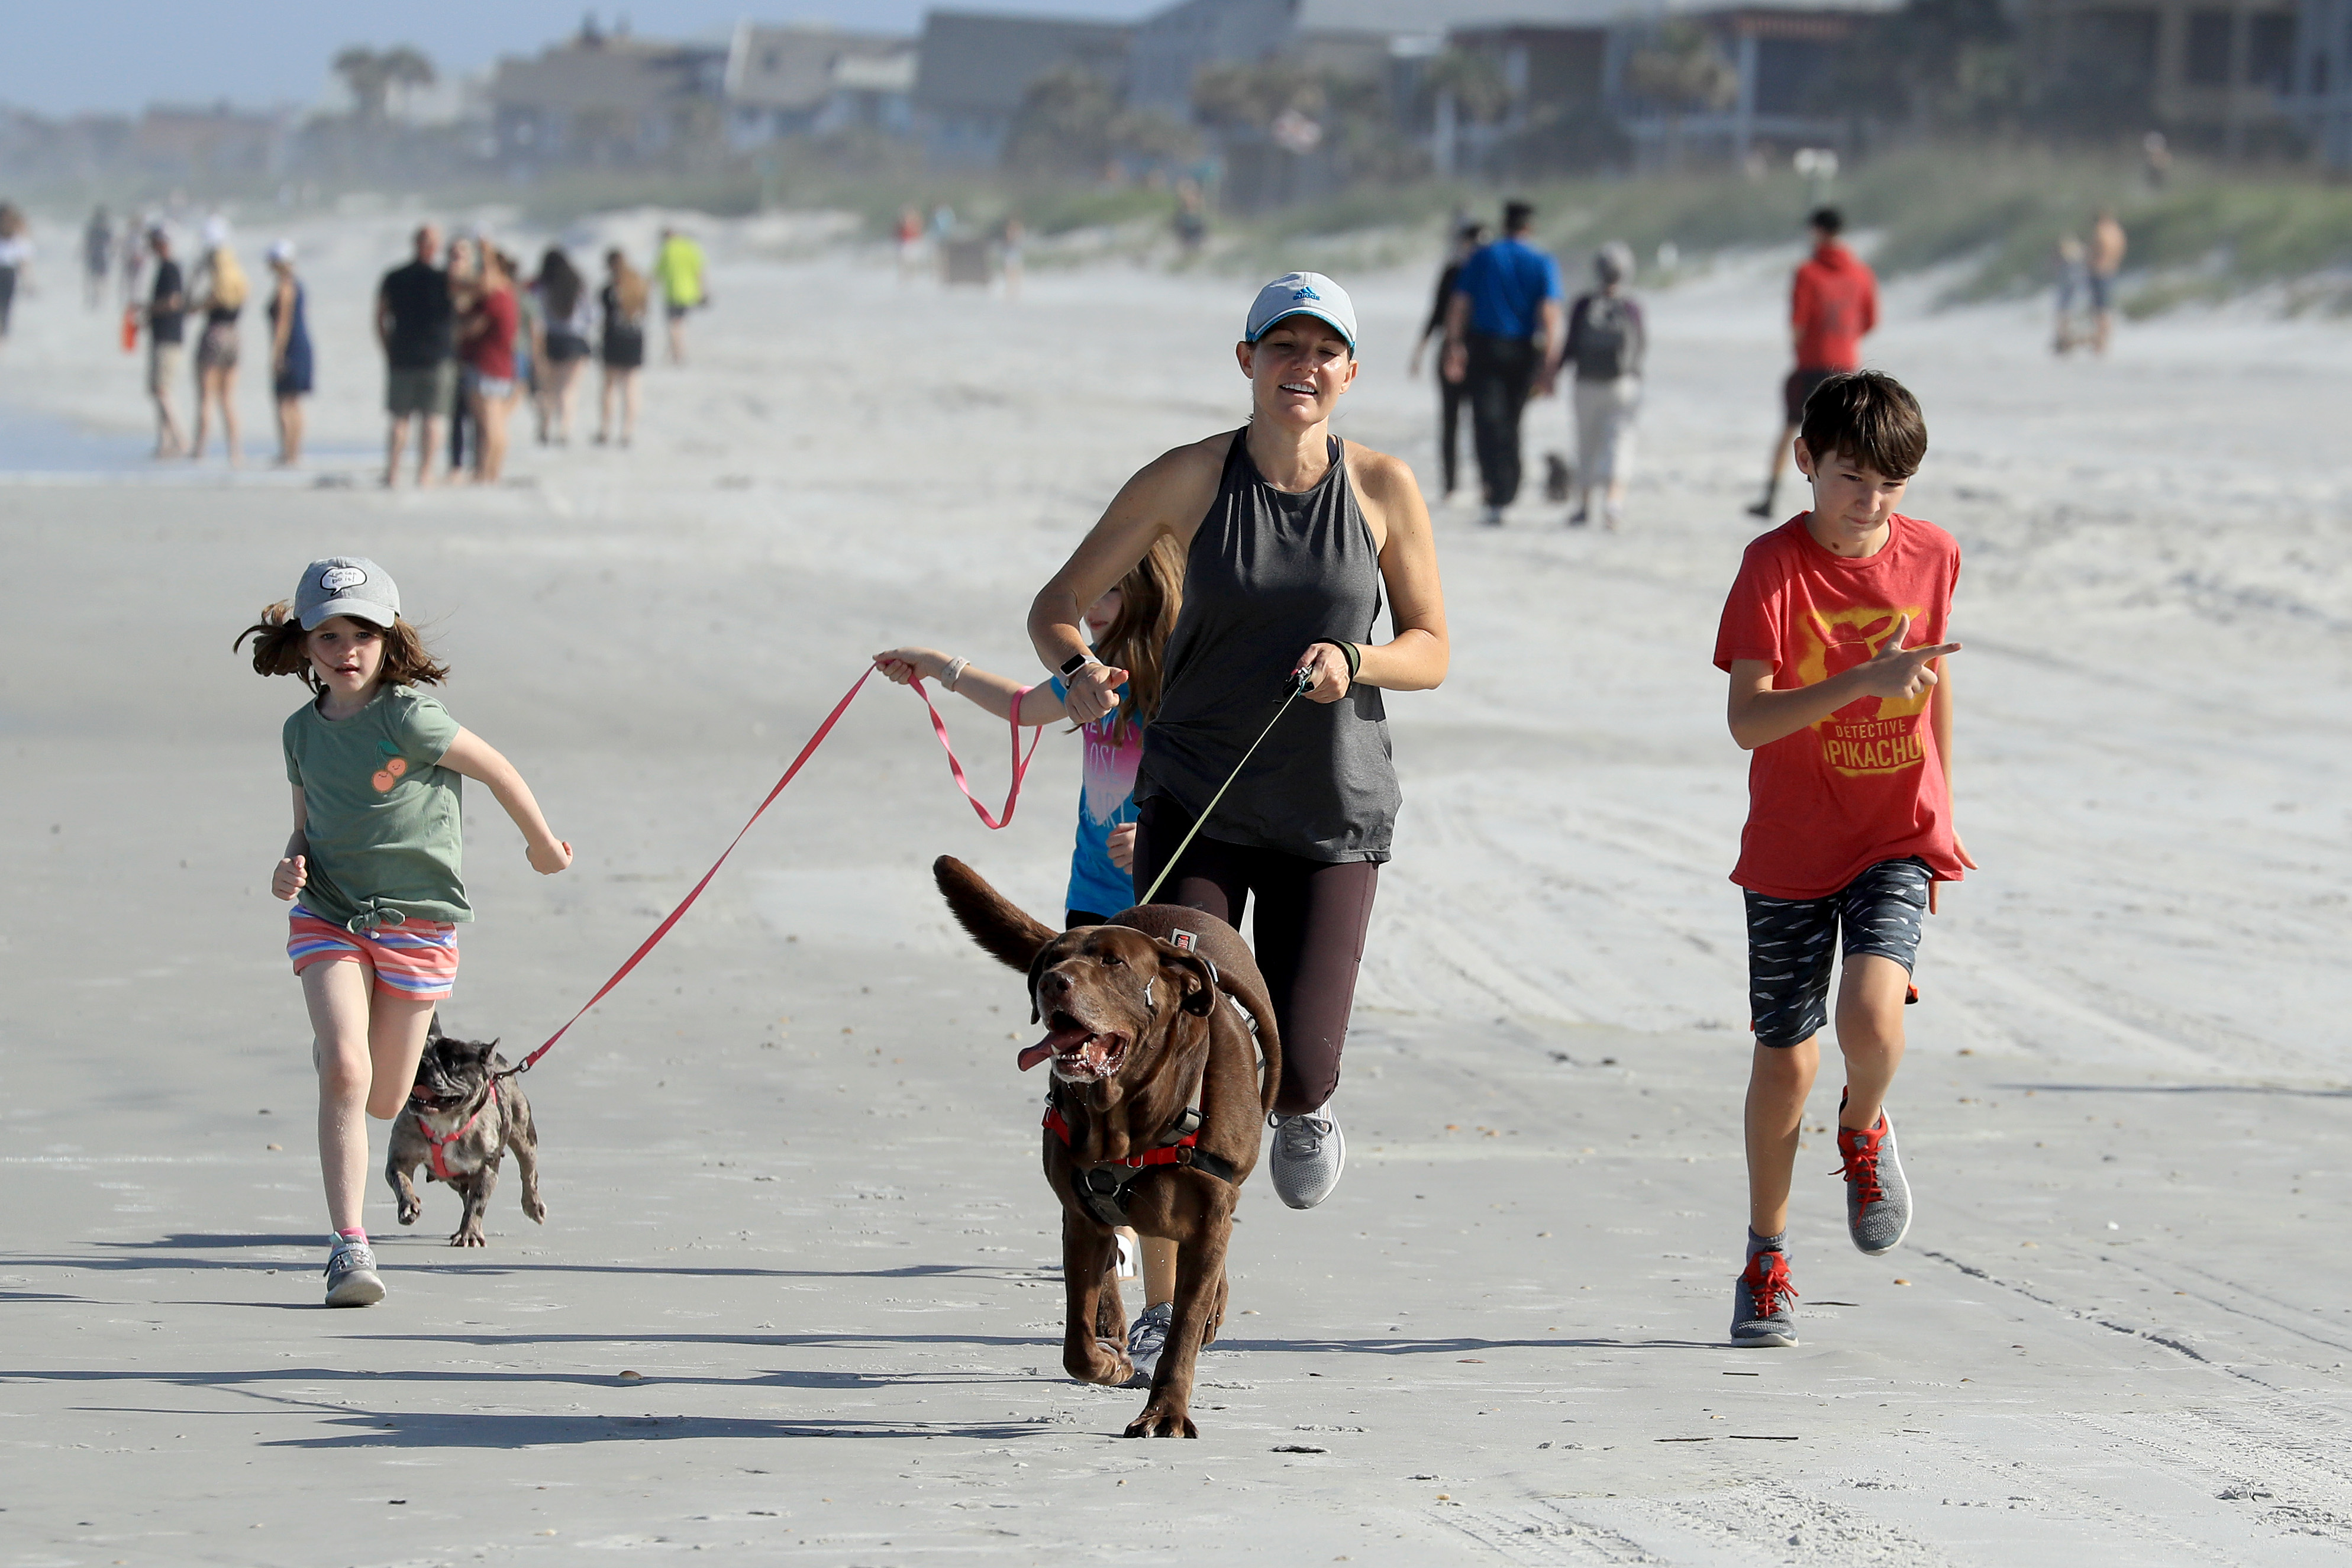 People run on the beach on April 17, 2020 in Jacksonville Beach, Florida. (Photo by Sam Greenwood/Getty Images)